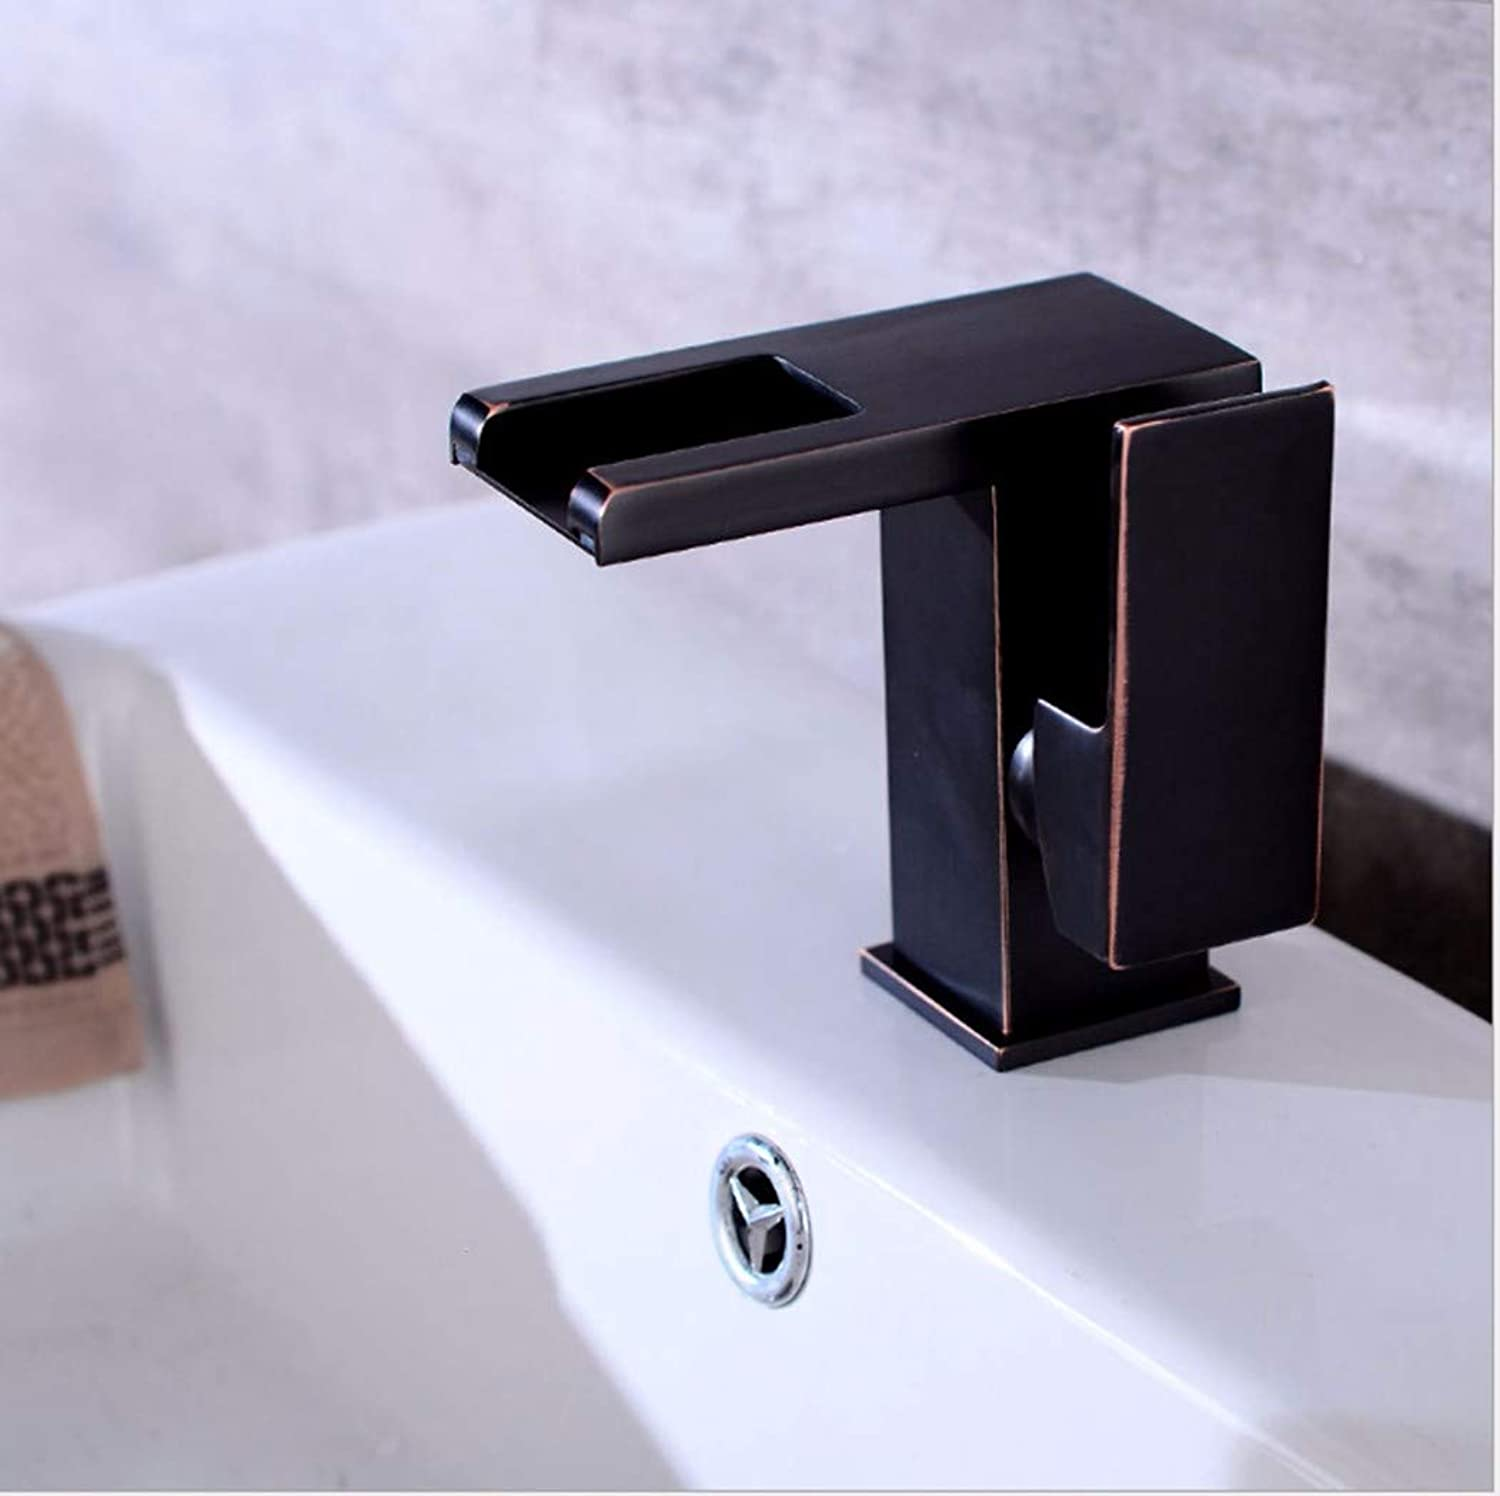 PatTheTap Waterfall Faucet Retro Metal Copper for Bathrooms Washbasins Hot Cold Mix Temperature Control